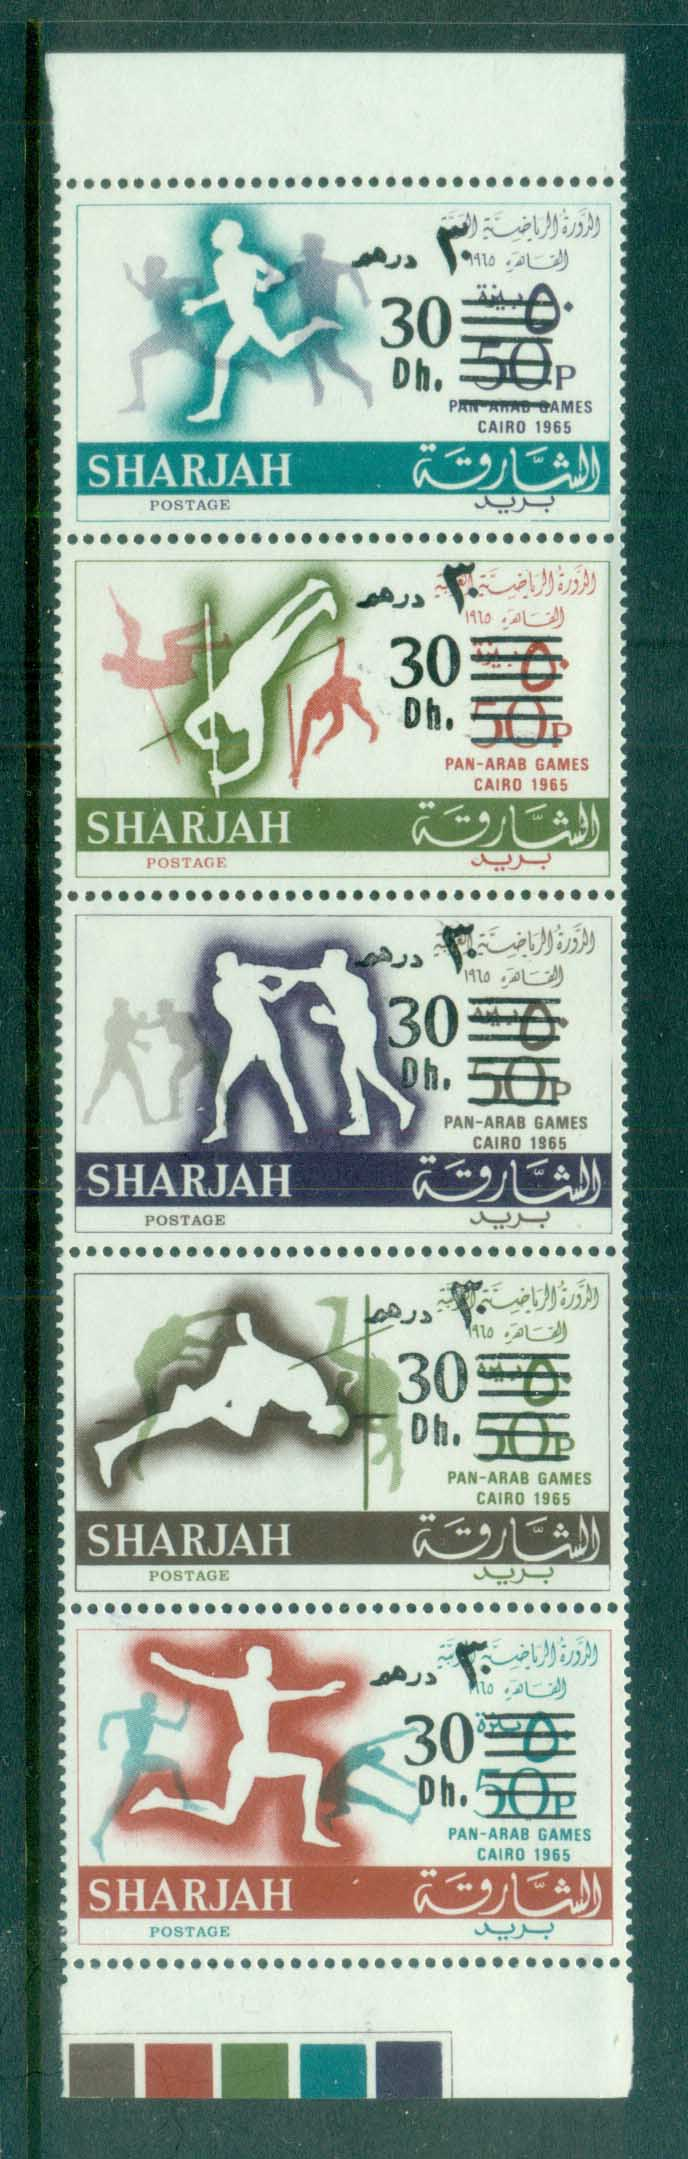 Sharjah 1966 Pan Arab Games New Currency Opt MUH lot84588